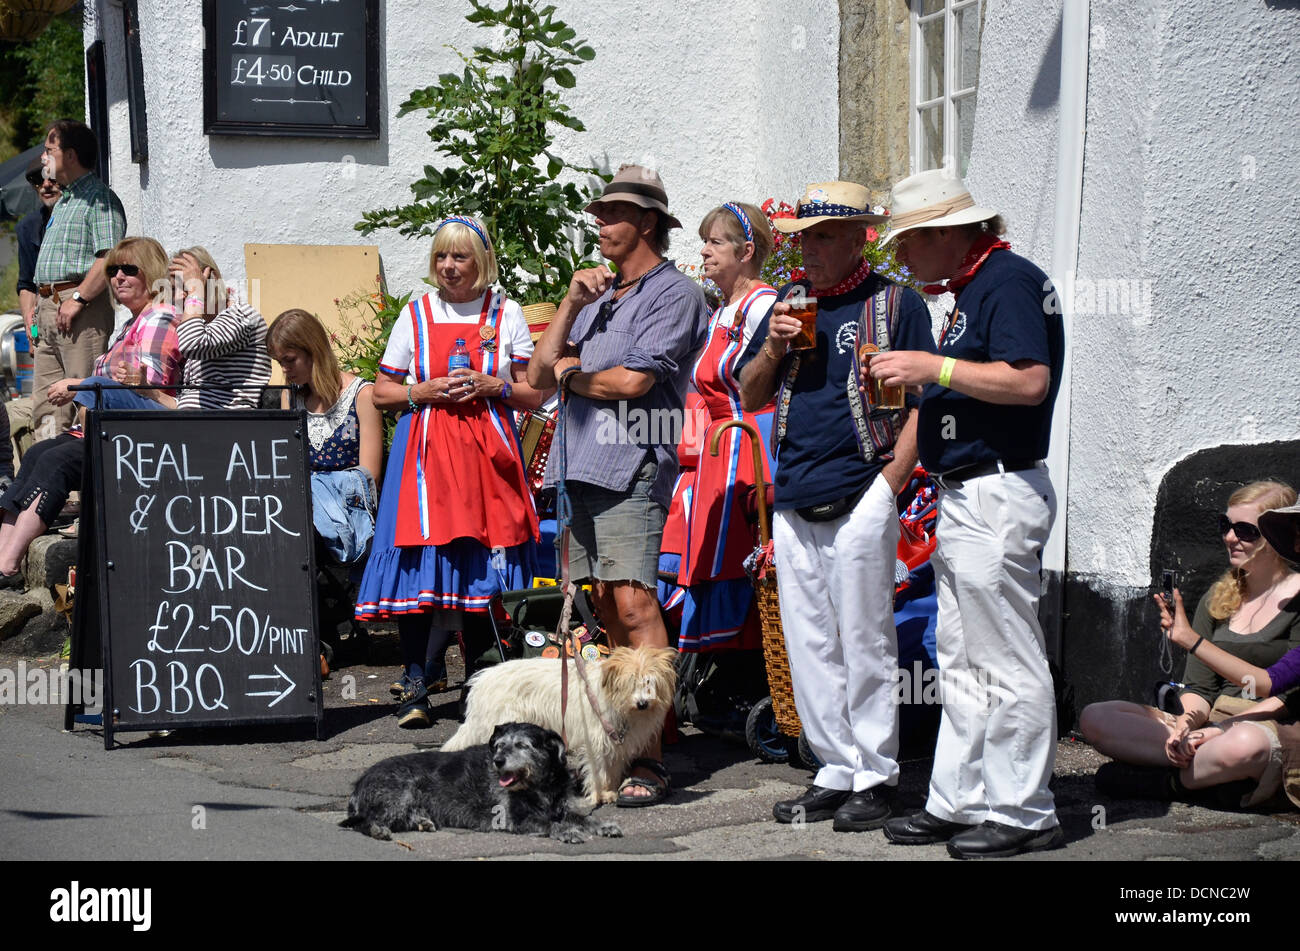 People drinking outside the Kings Arms pub, South Zeal, Dartmoor, Devon, during the 2013 Dartmoor Folk Festival - Stock Image